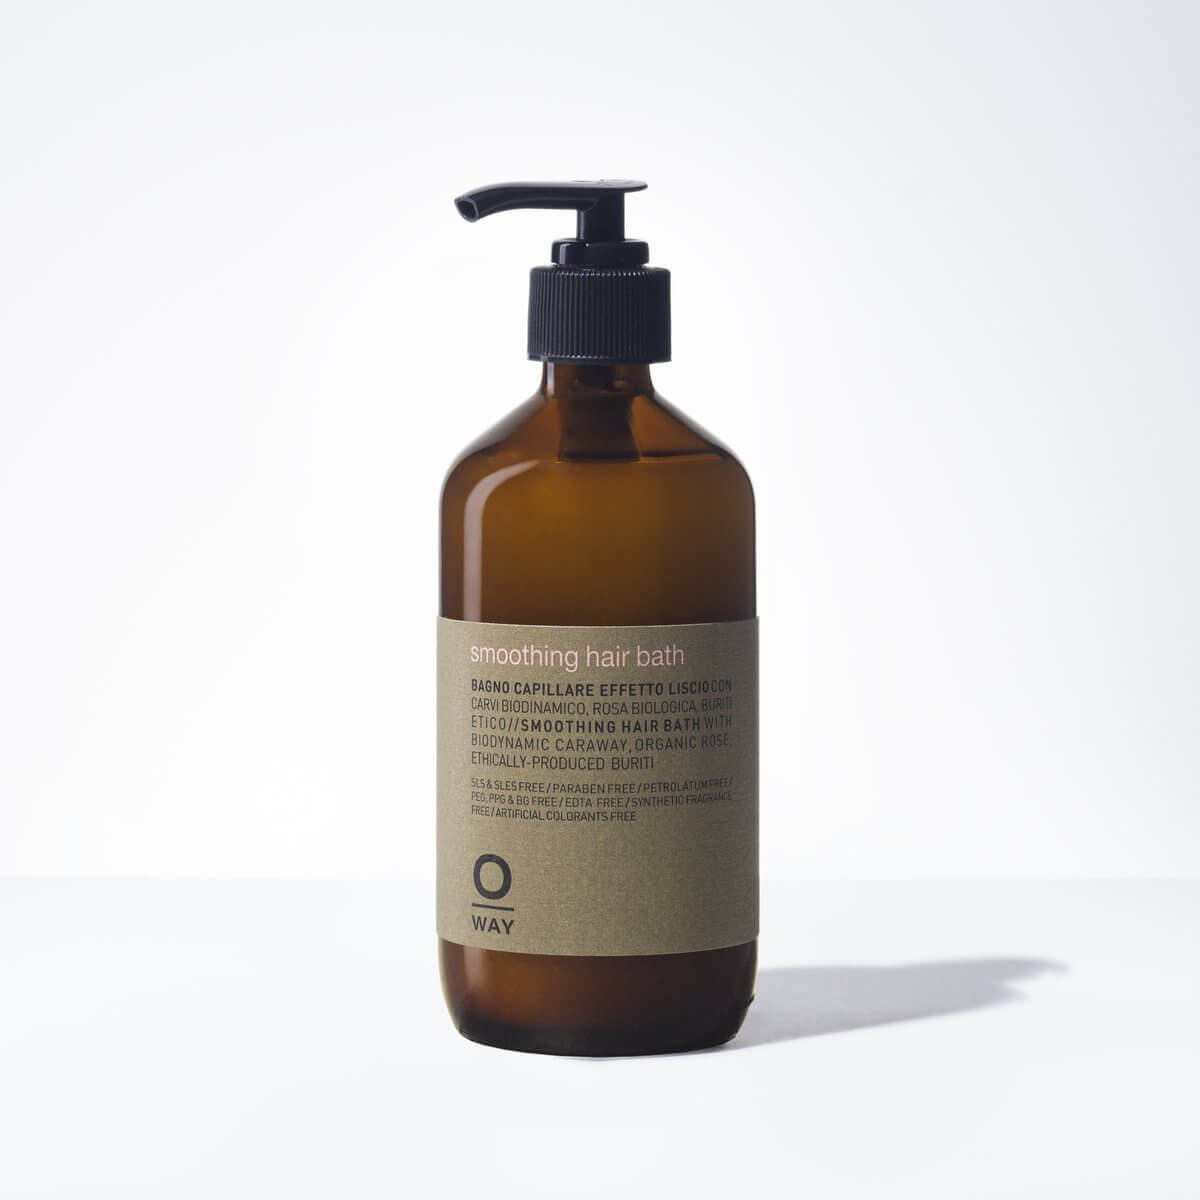 Oway_Smoothing_Hair_Bath_Retail_1200x